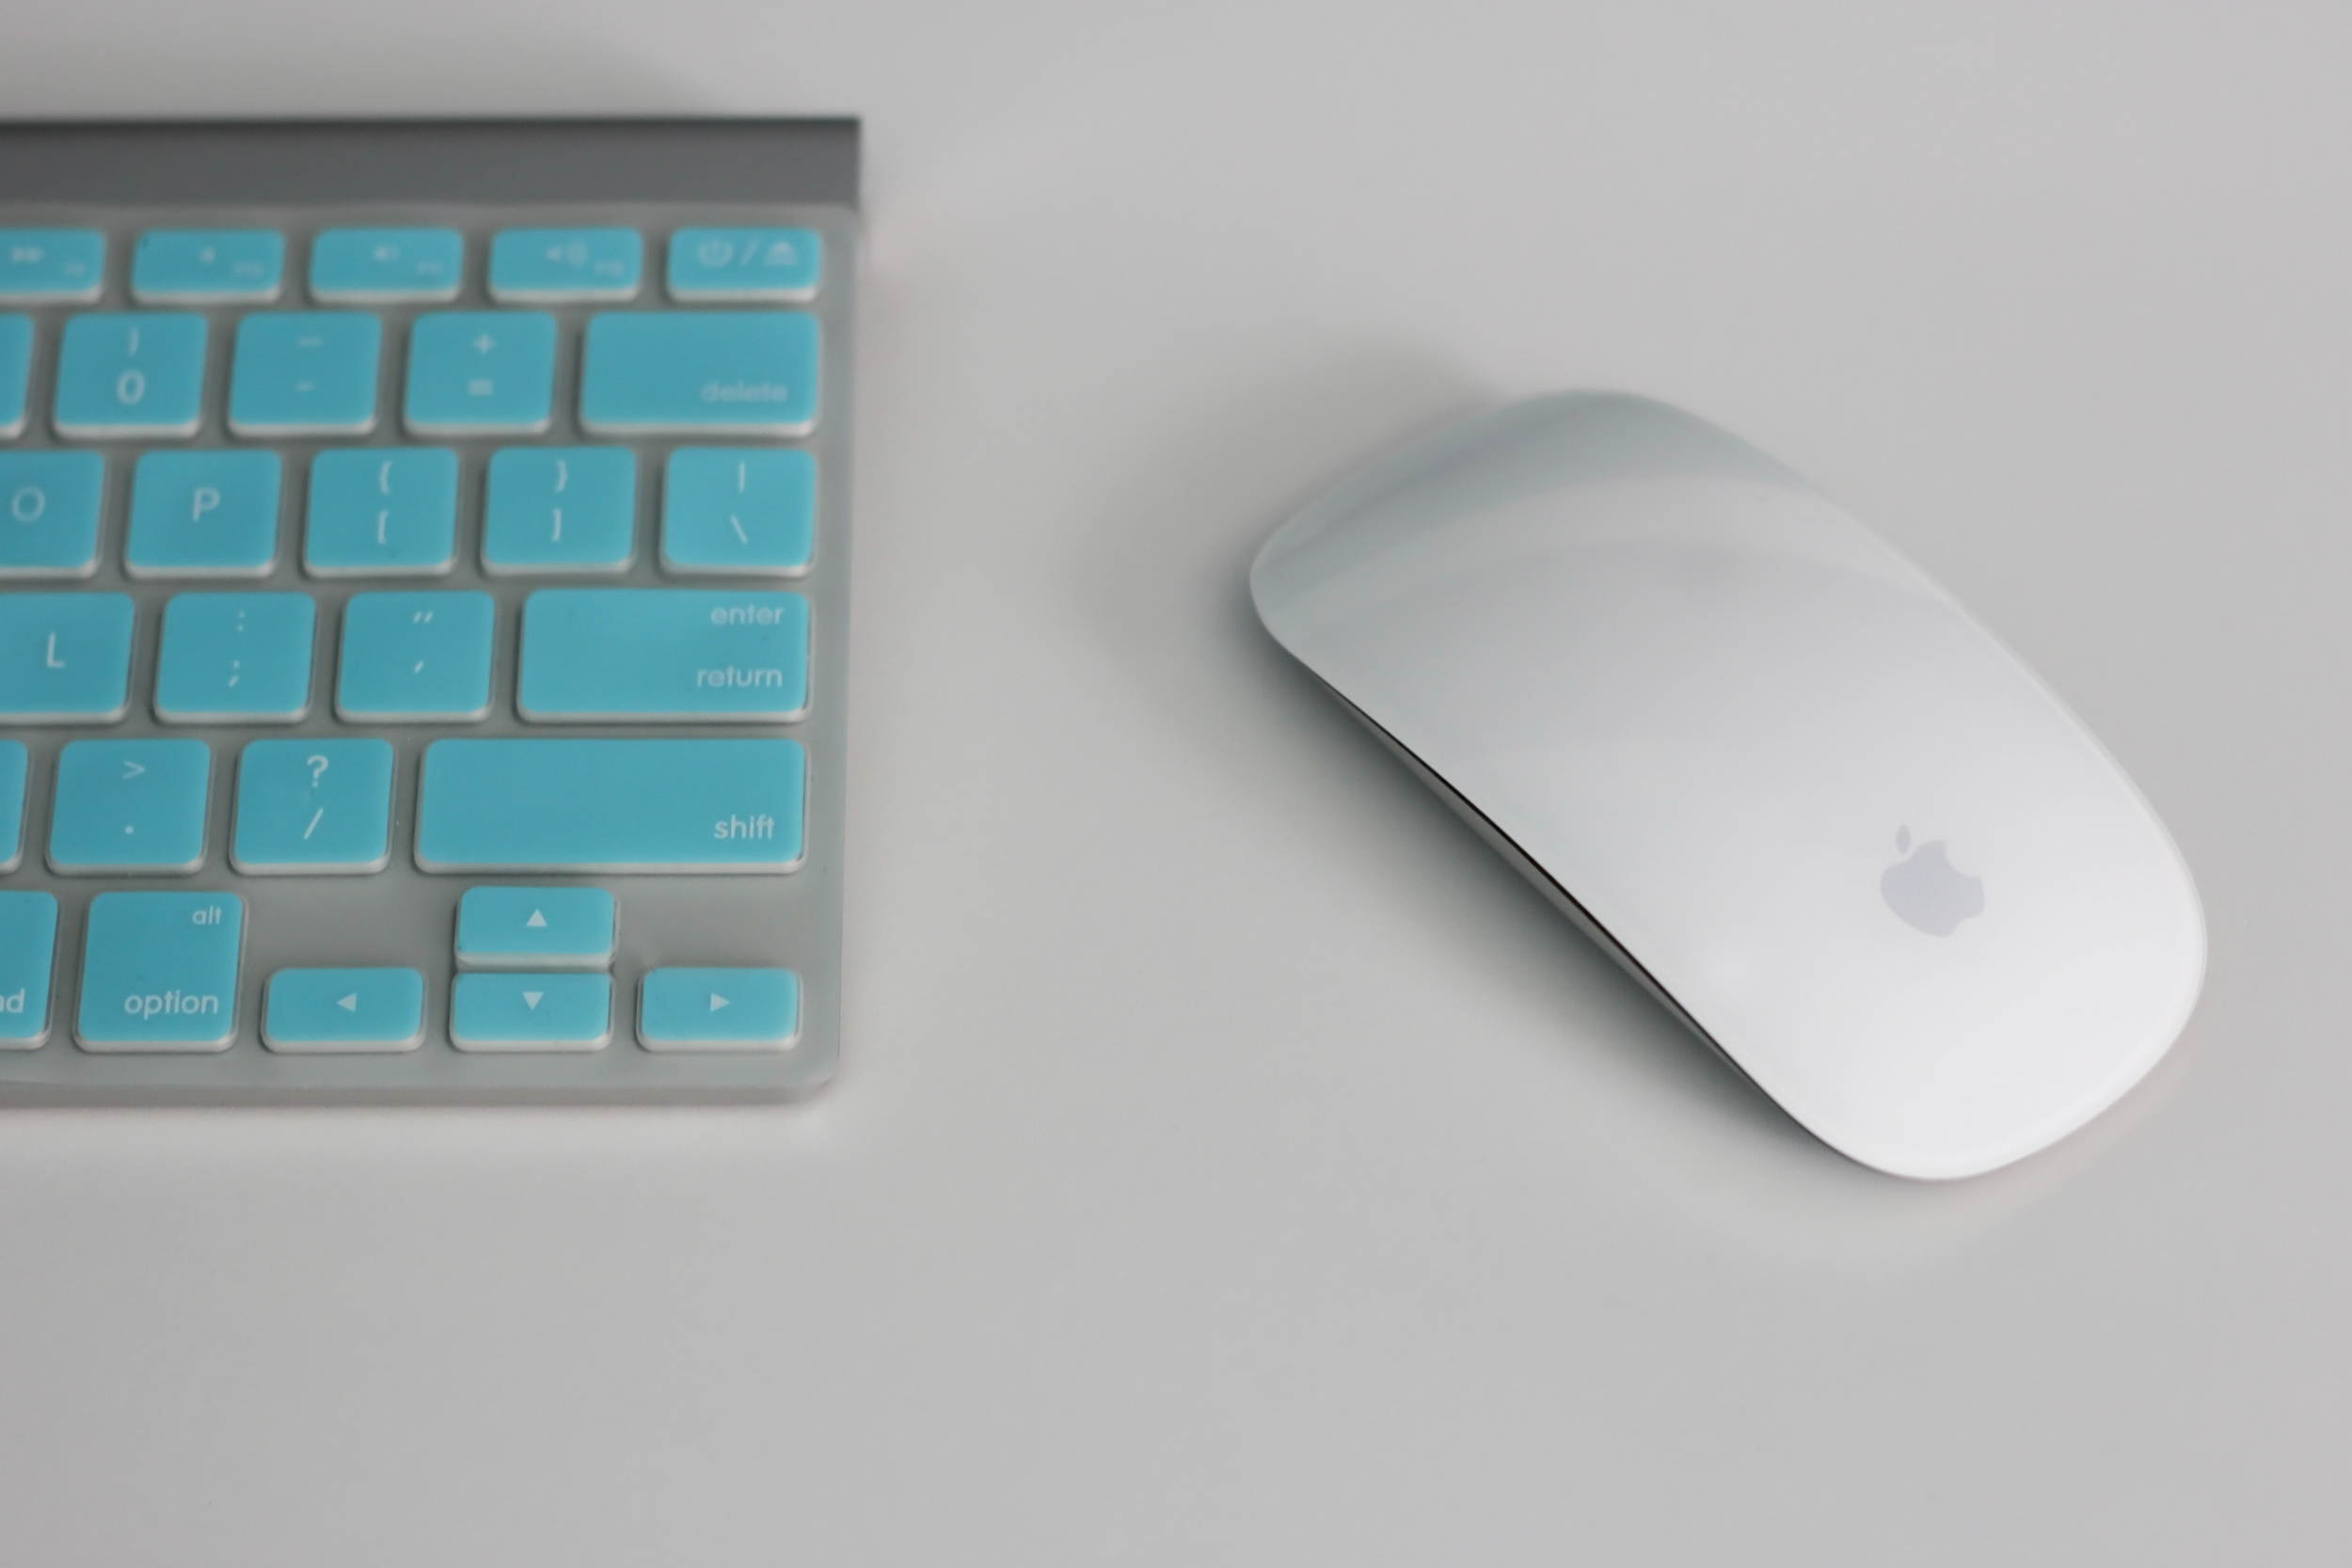 macmouse